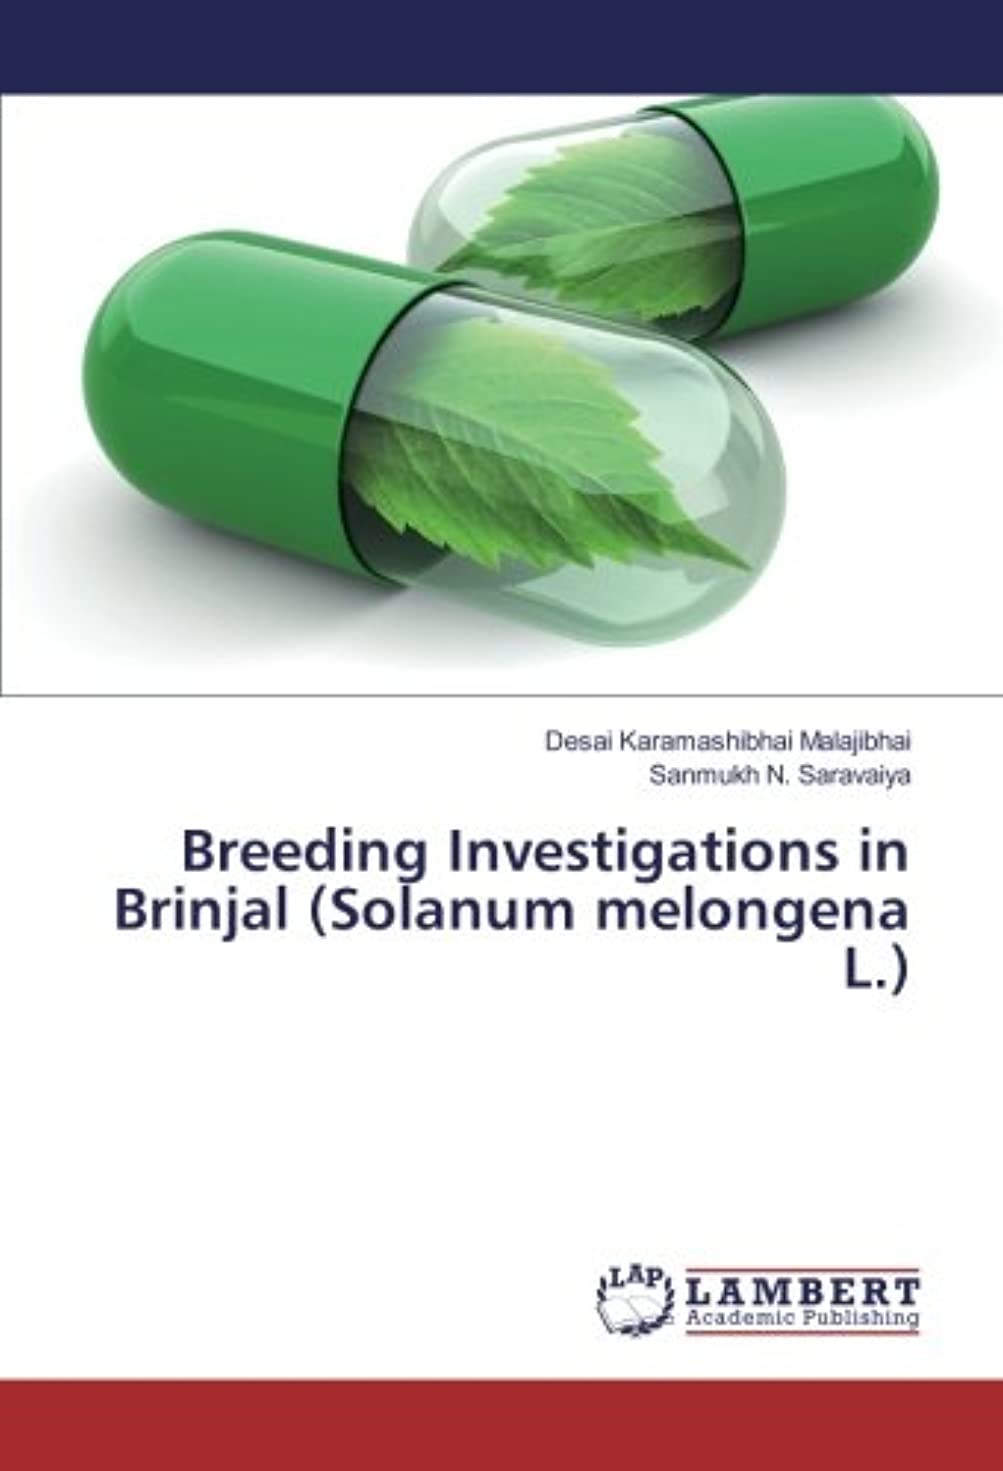 認証トランジスタ民族主義Breeding Investigations in Brinjal (Solanum melongena L.)